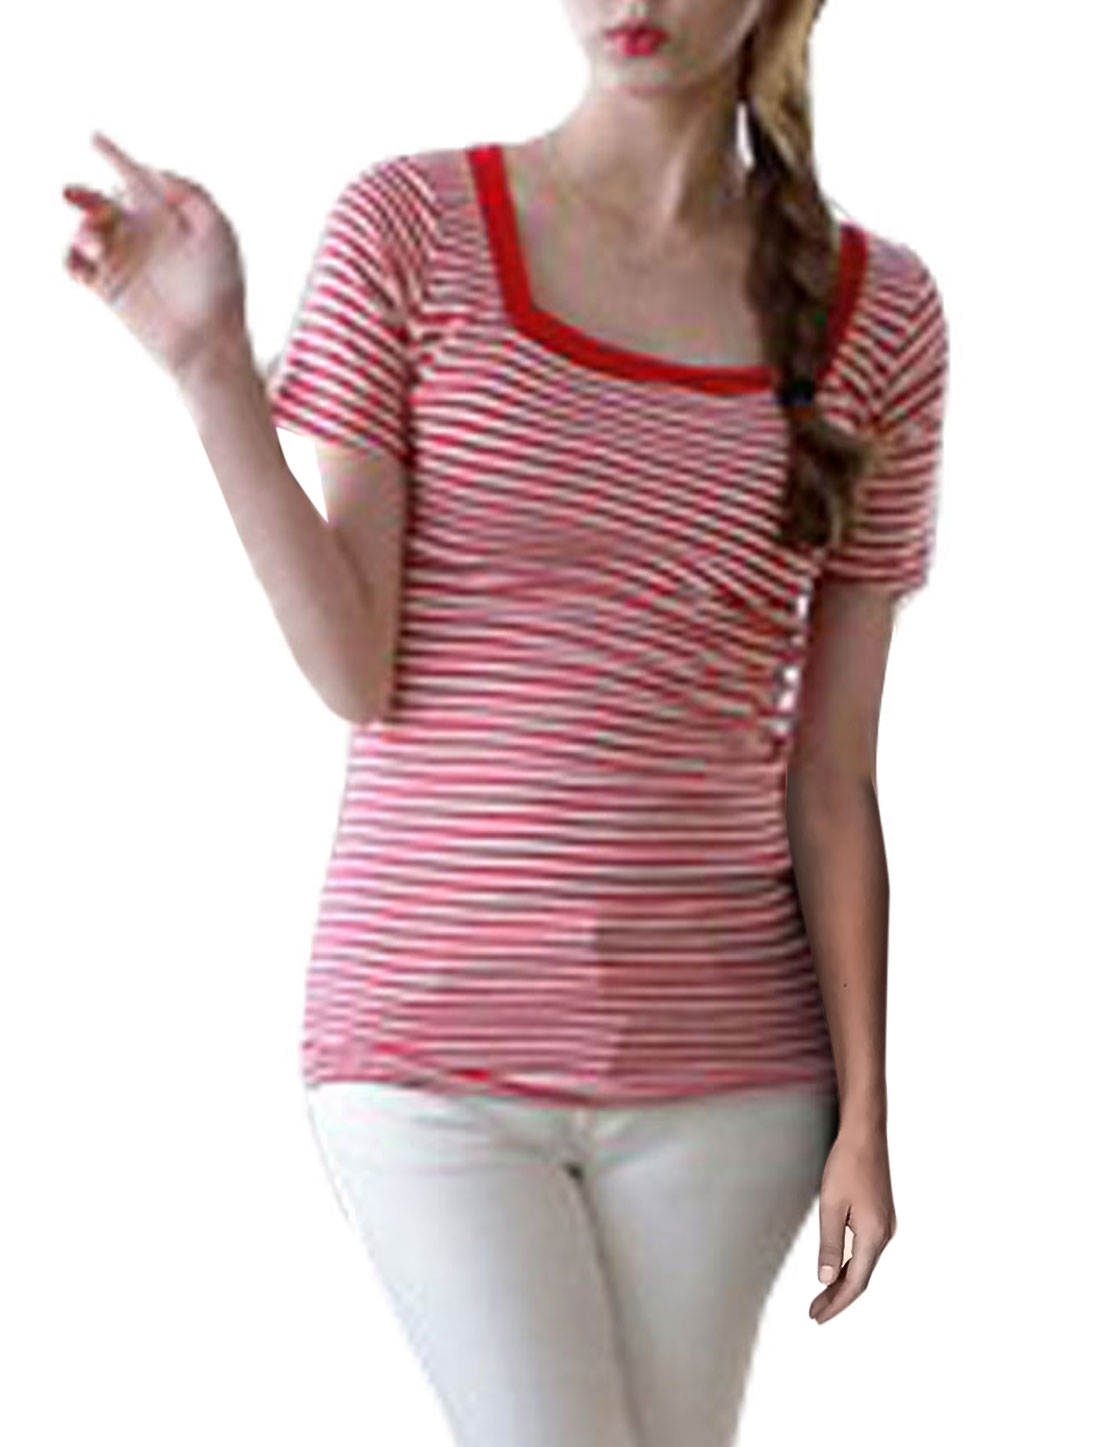 Woman New Style Square Neck Short Sleeve Red White Stripes Pattern Shirt XS